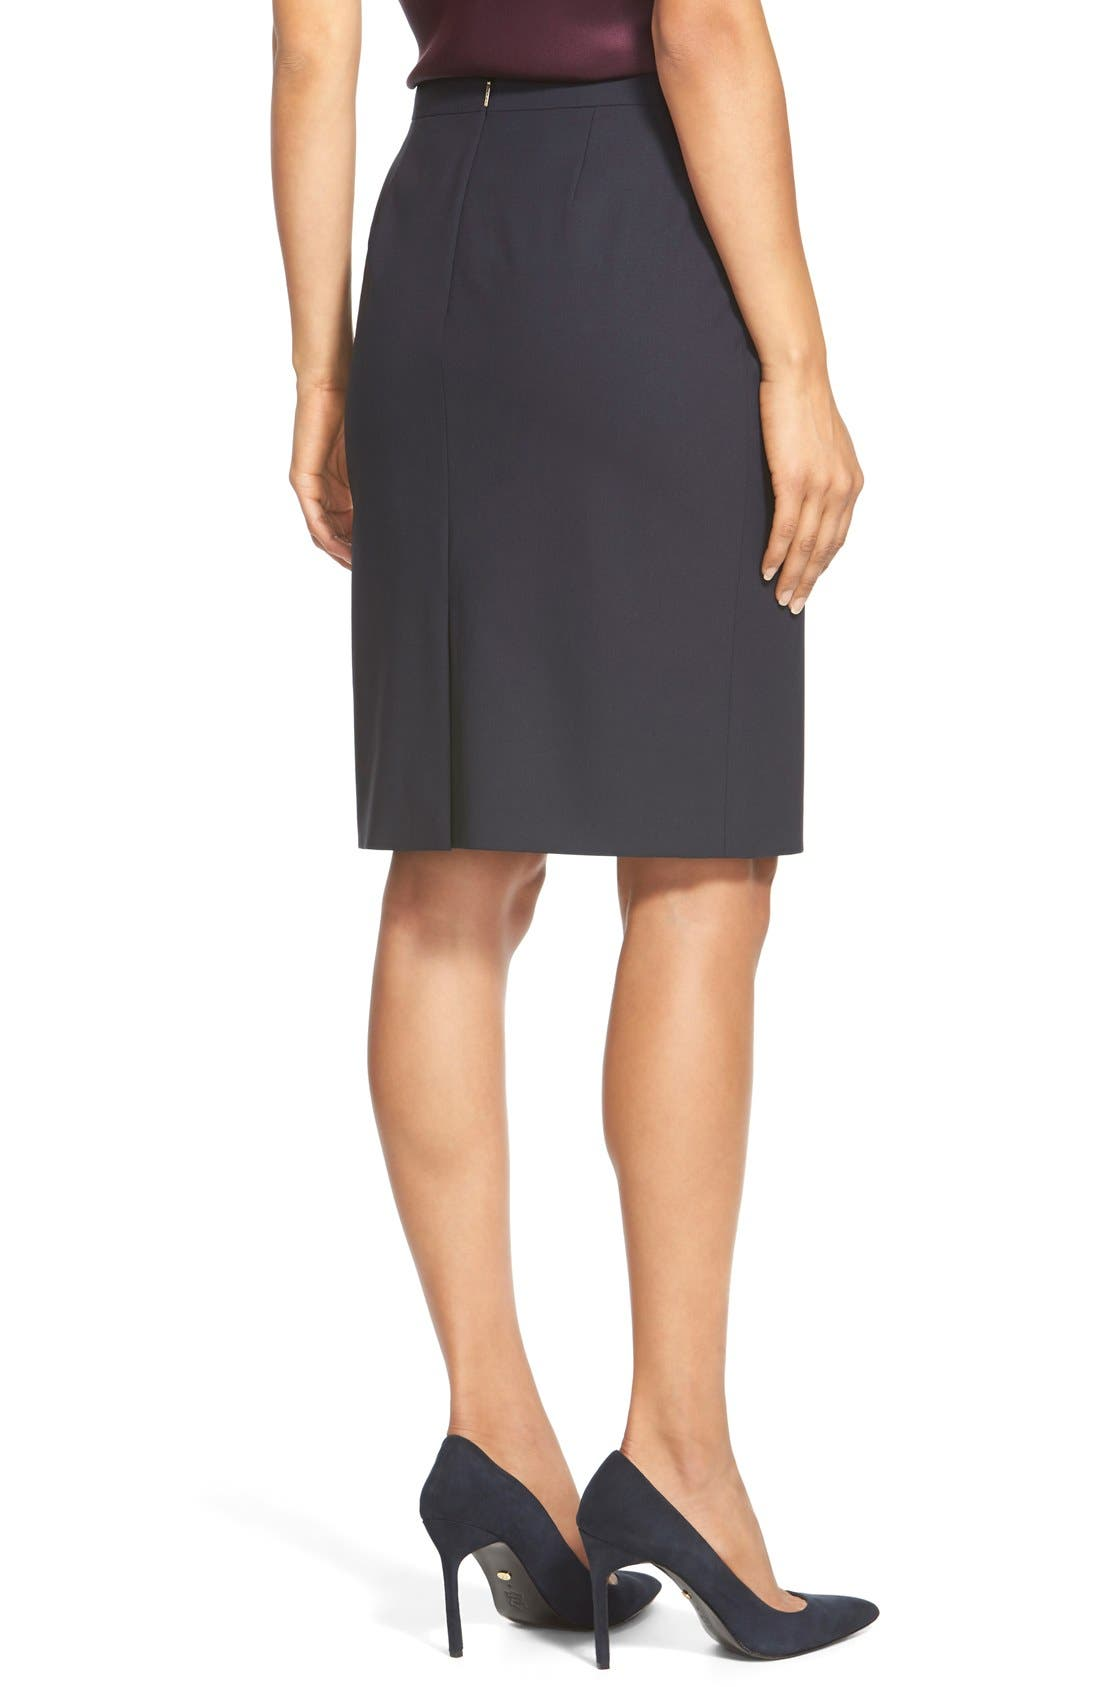 Vilea Tropical Stretch Wool Pencil Skirt,                             Alternate thumbnail 3, color,                             Navy